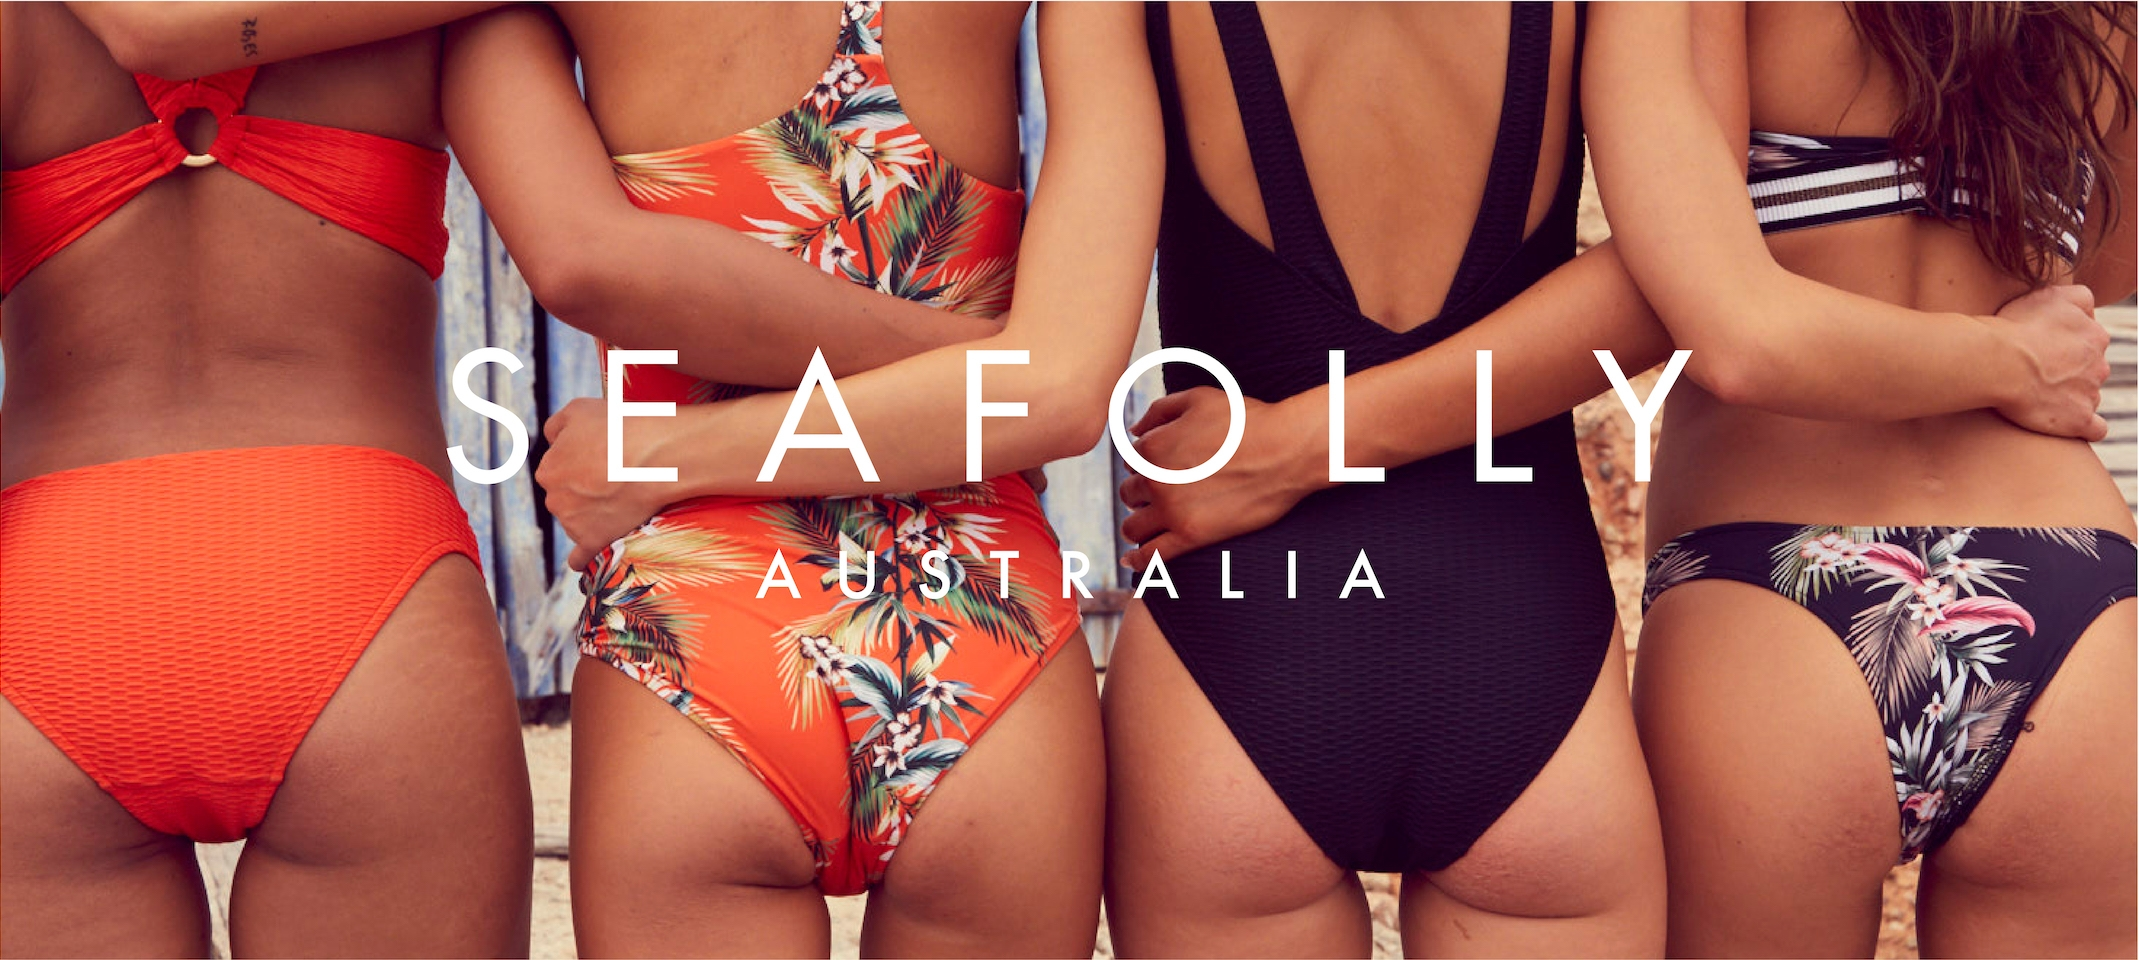 Seafolly is 'Made to Summer' in latest global campaign